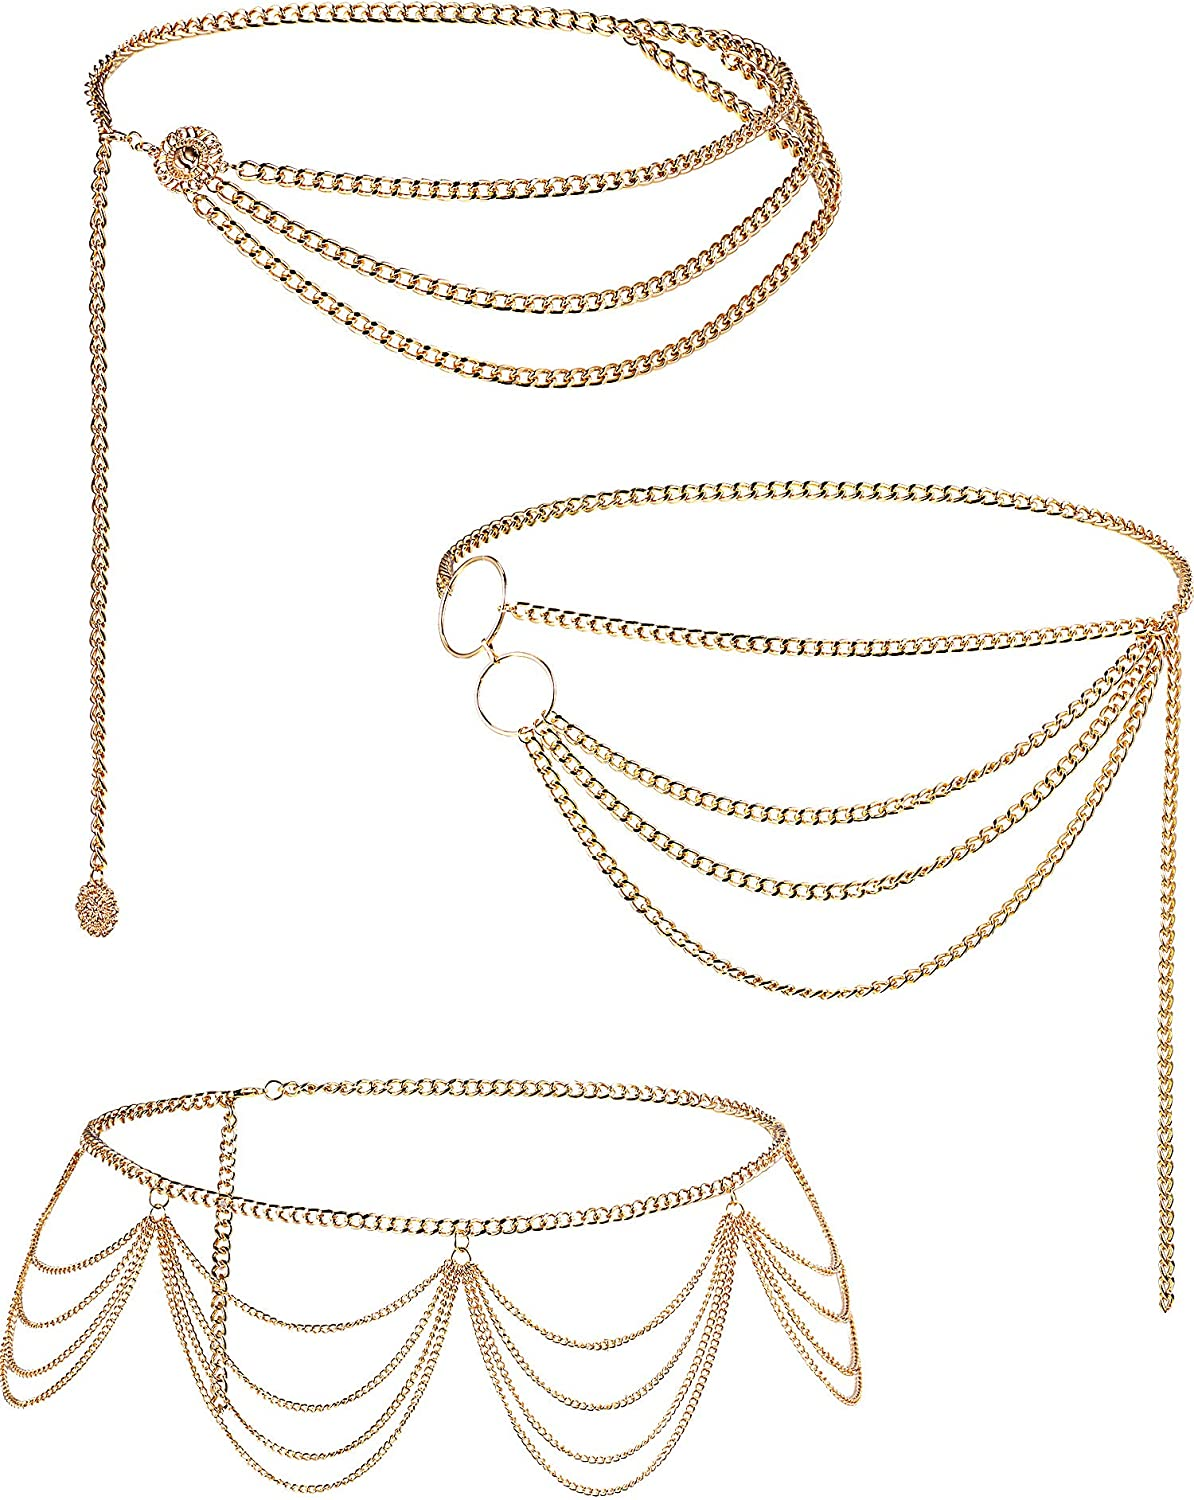 Hicarer 3 Pieces Belly Waist Chain Multi-Layer Metal Waist Chain Body Summer Beach Jewelry for Women and Girls, Tassel Style